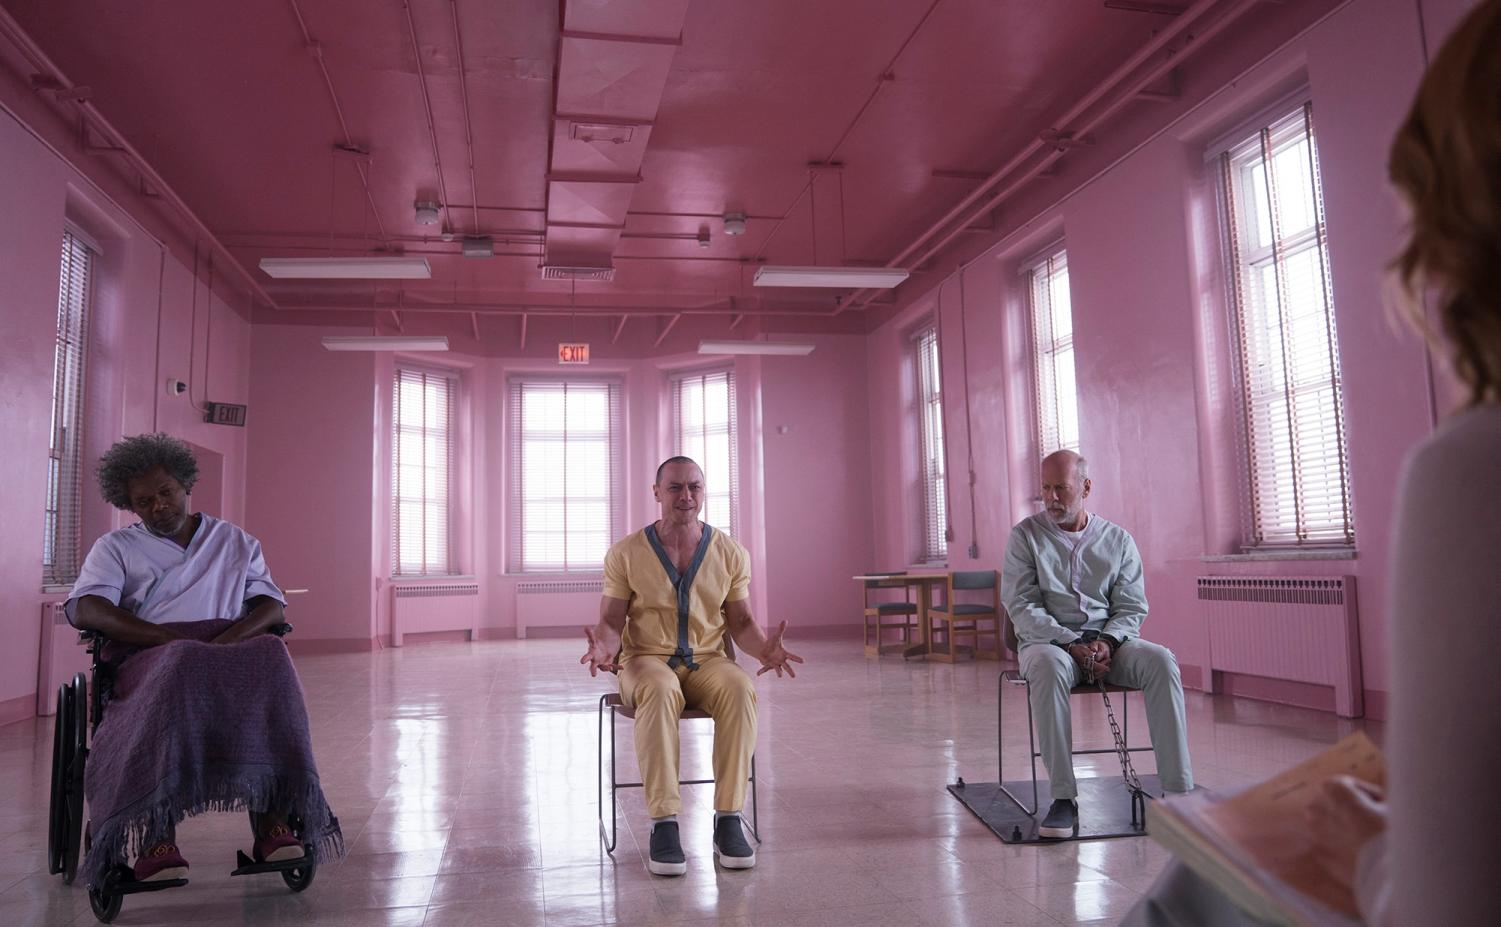 Elijah Prince (Samuel L. Jackson), Kevin Wendell Crumb (James McAvoy), and David Dunn (Bruce Willis) sit in a room while they are interrogated.